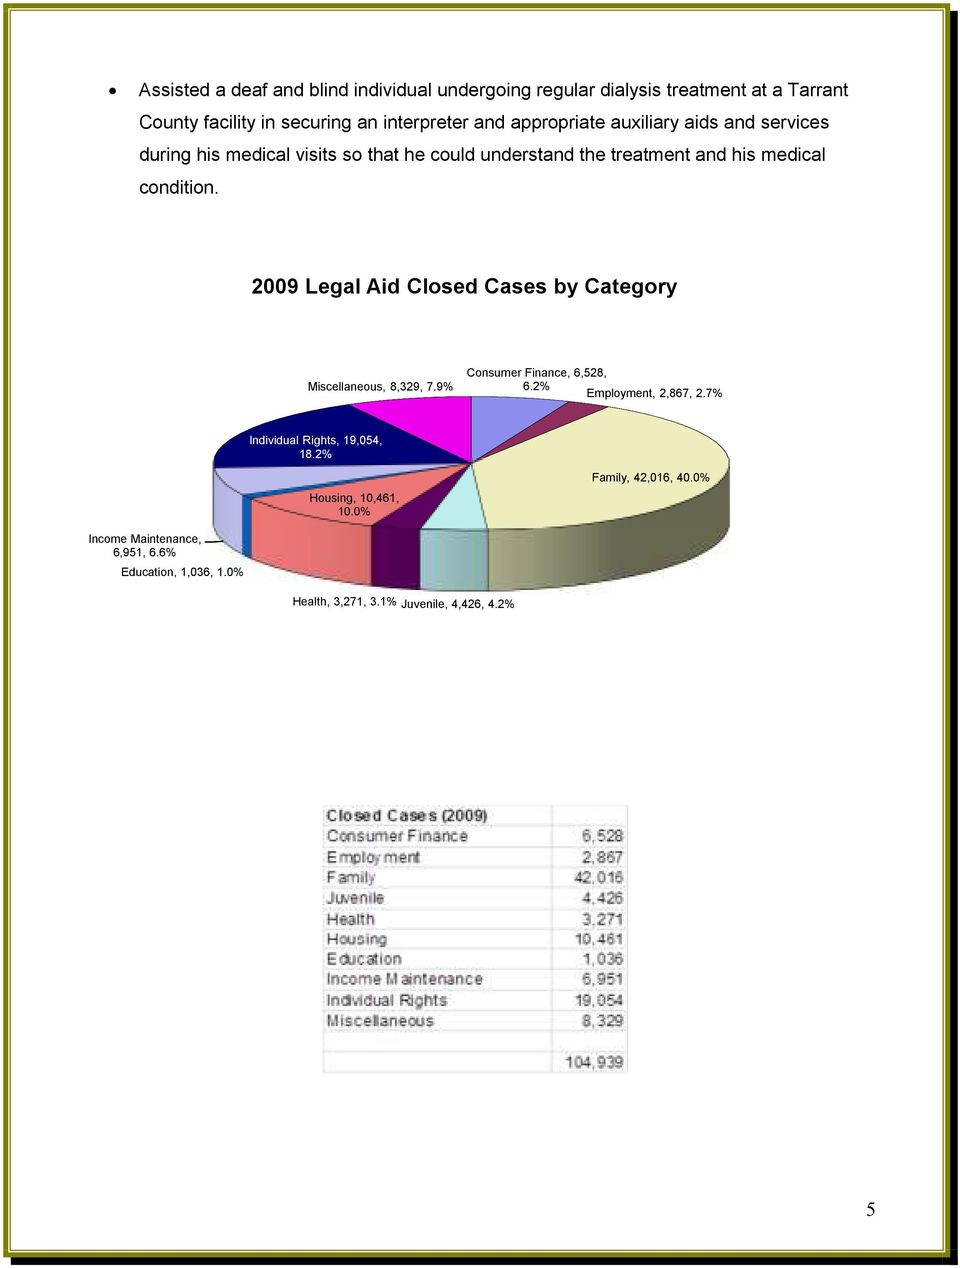 2009 Legal Aid Closed Cases by Category Miscellaneous, 8,329, 7.9% Consumer Finance, 6,528, 6.2% Employment, 2,867, 2.